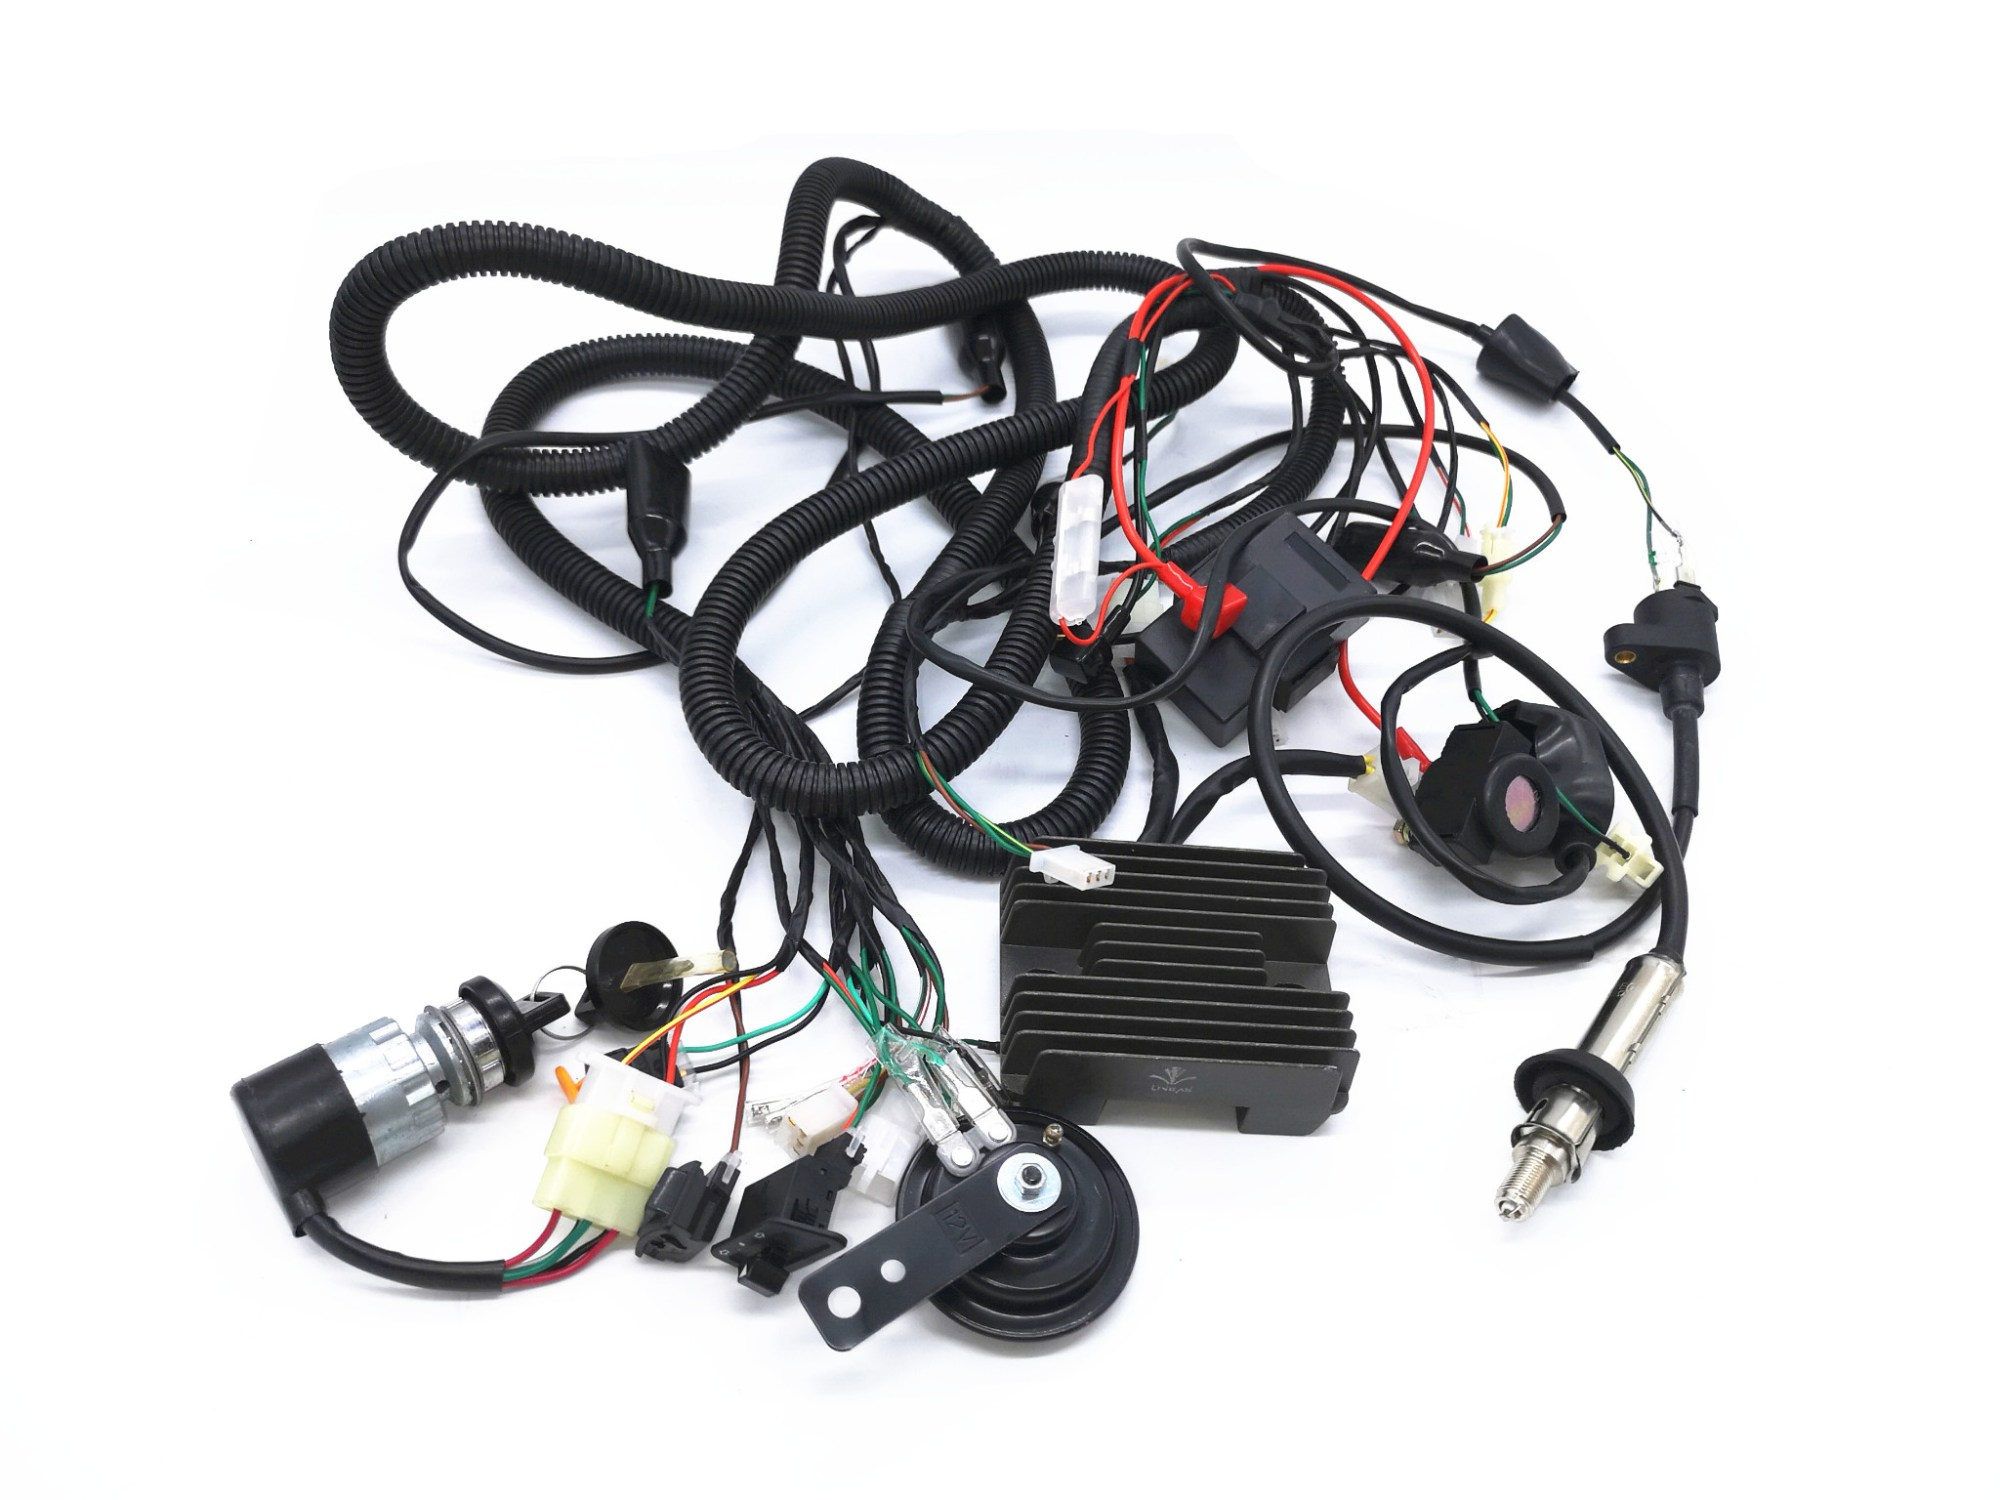 hight resolution of cf250 gy6 250cc kandi kinroad buggy complete wiring loom harness components